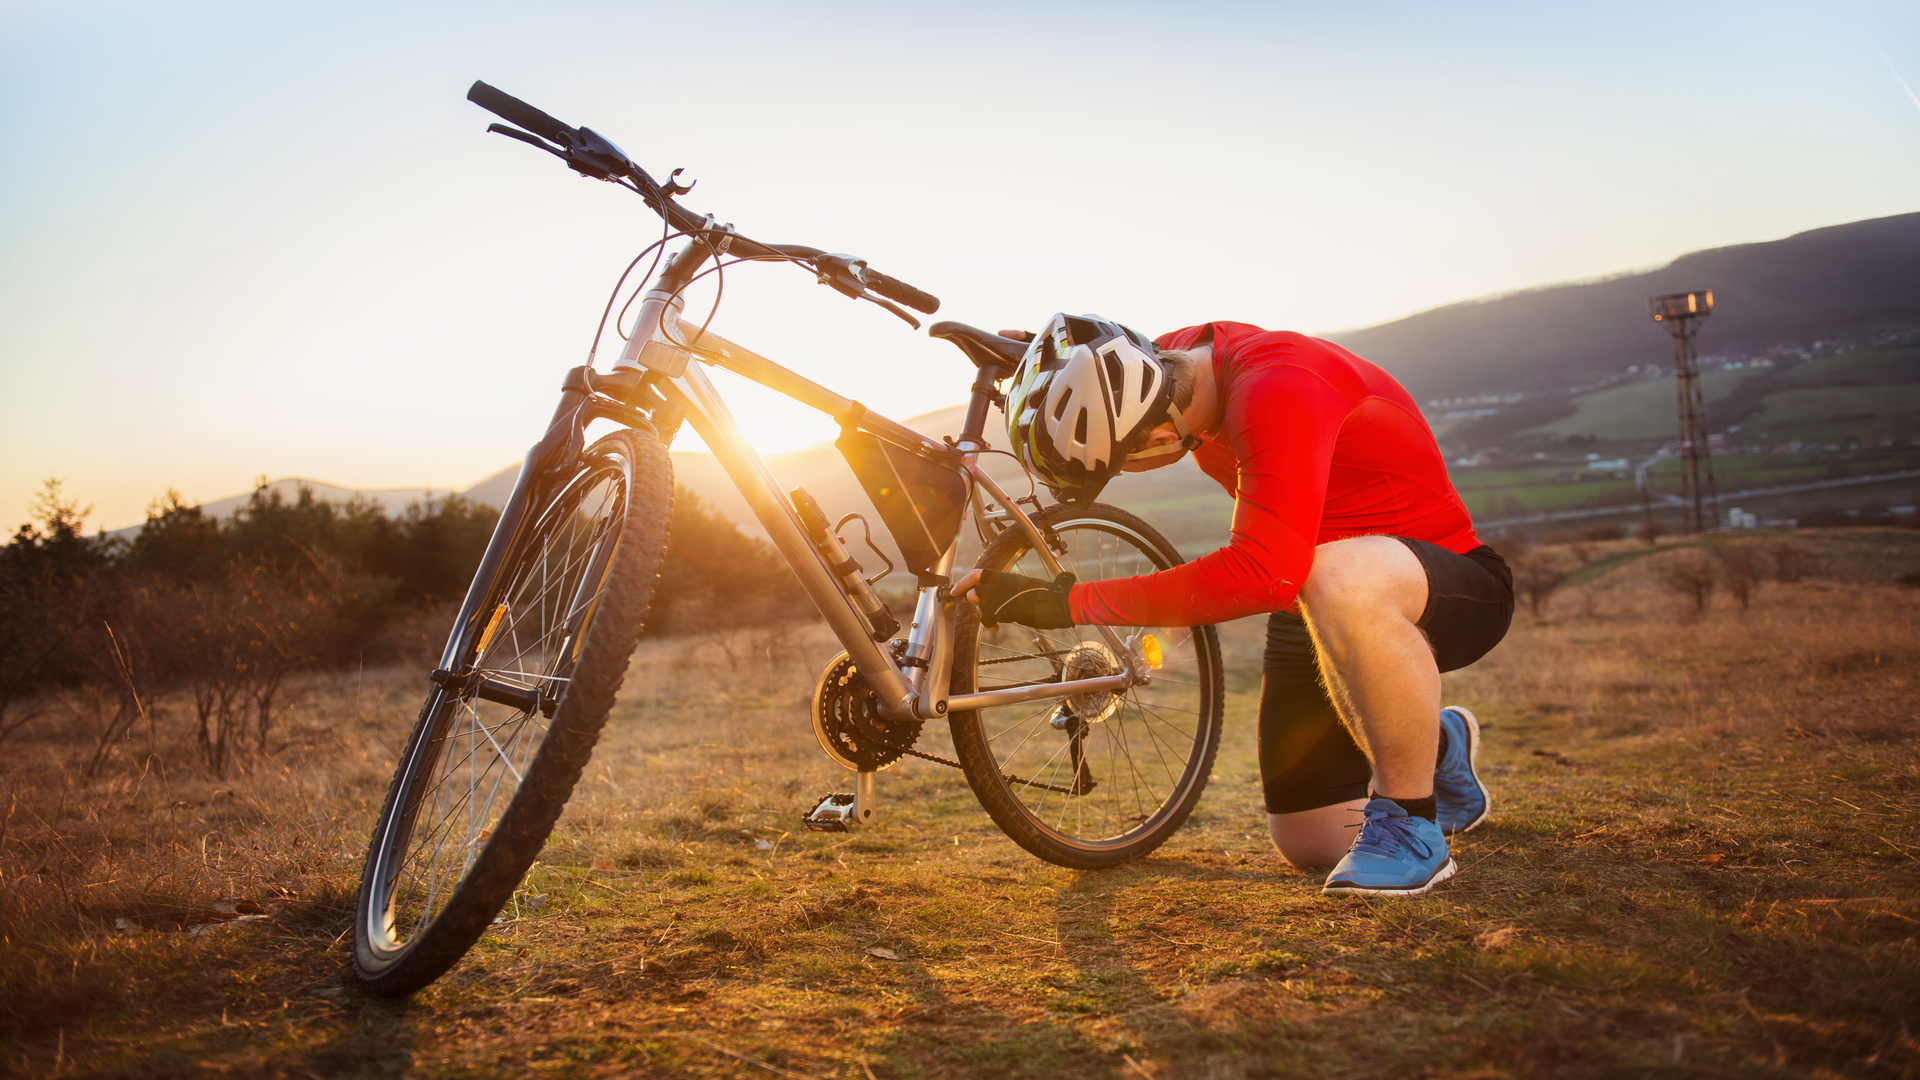 7 TIPS TO TAKE CARE OF YOUR BICYCLE